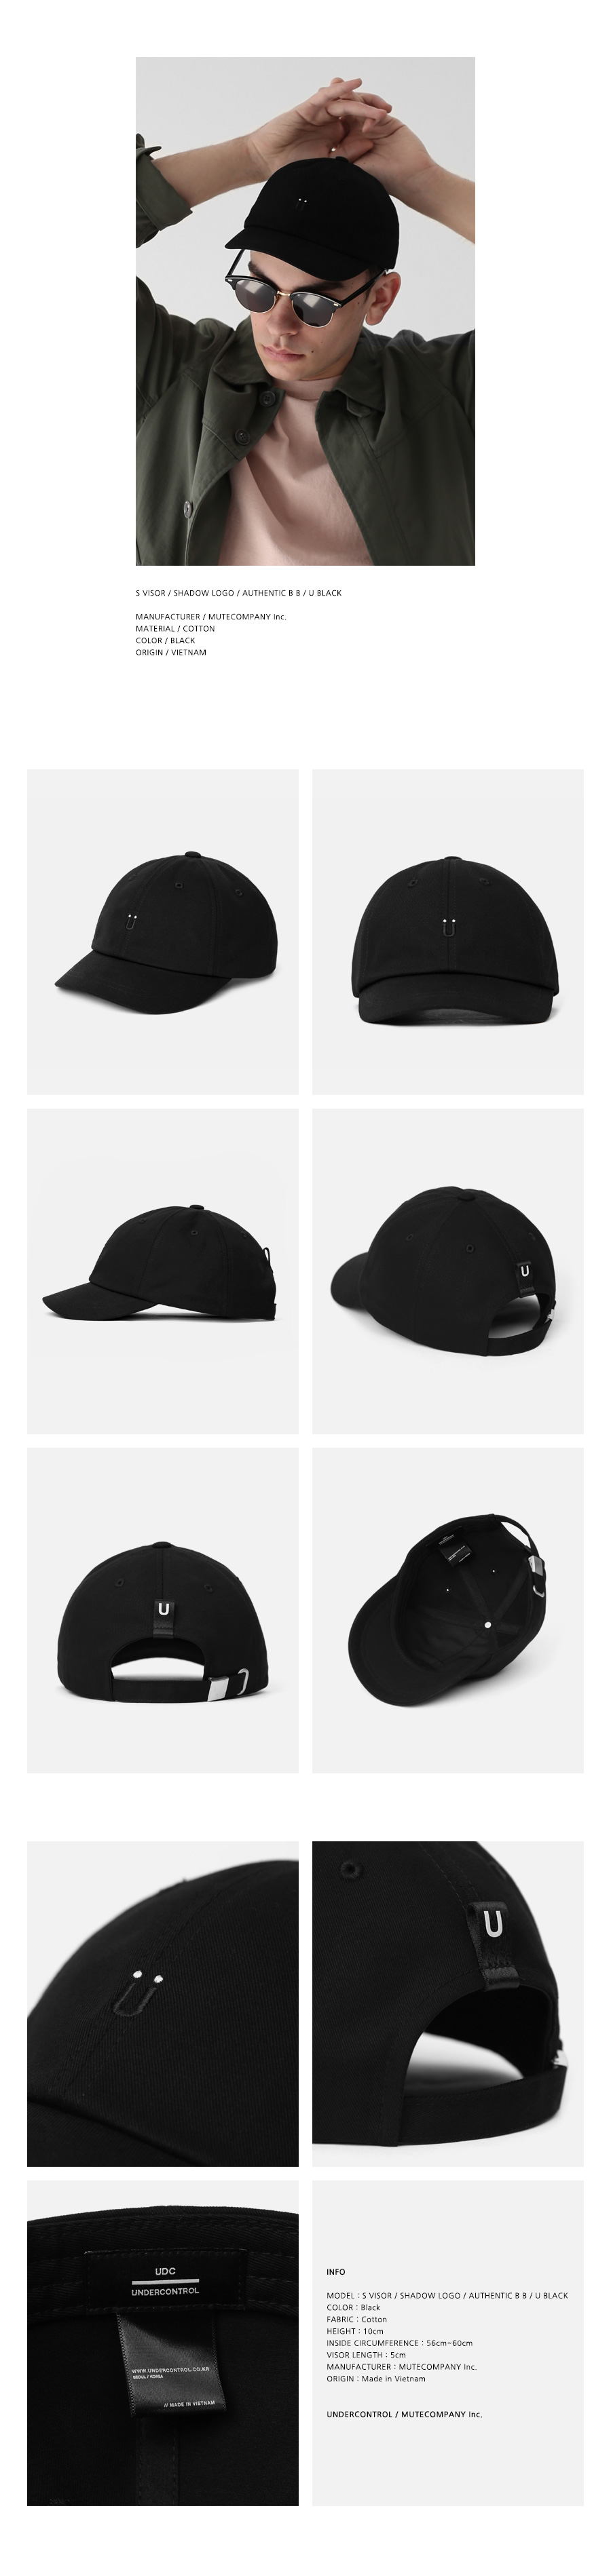 언더컨트롤(UNDERCONTROL) S VISOR / SHADOW LOGO / AUTHENTIC B B / U BLACK